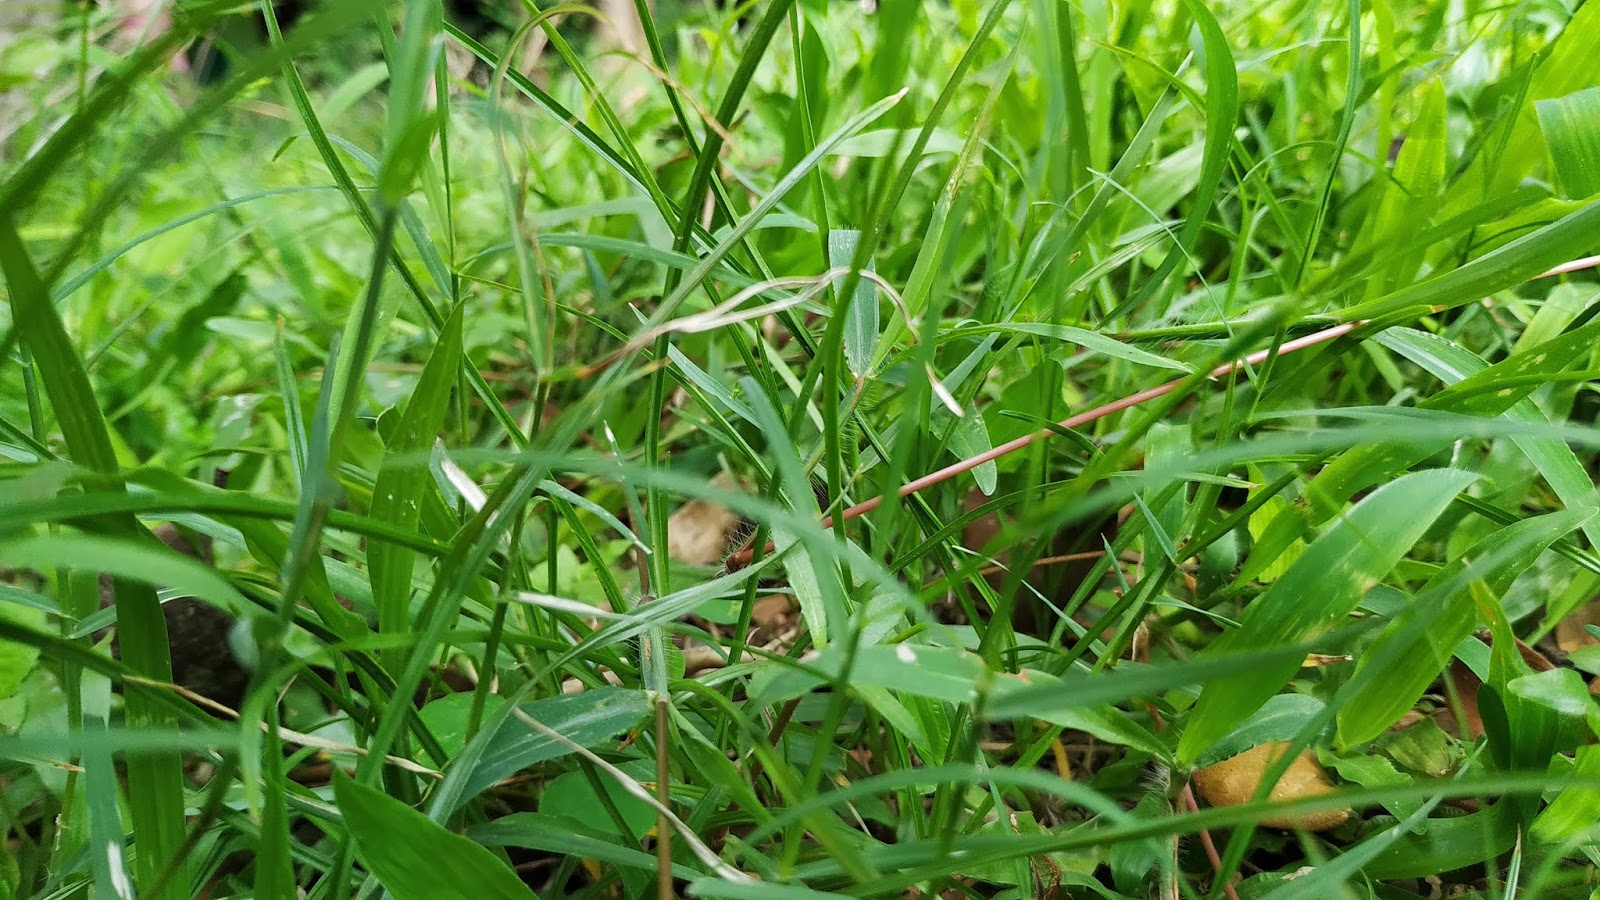 Nature green grass wallpaper Photo - Image HD Download Free